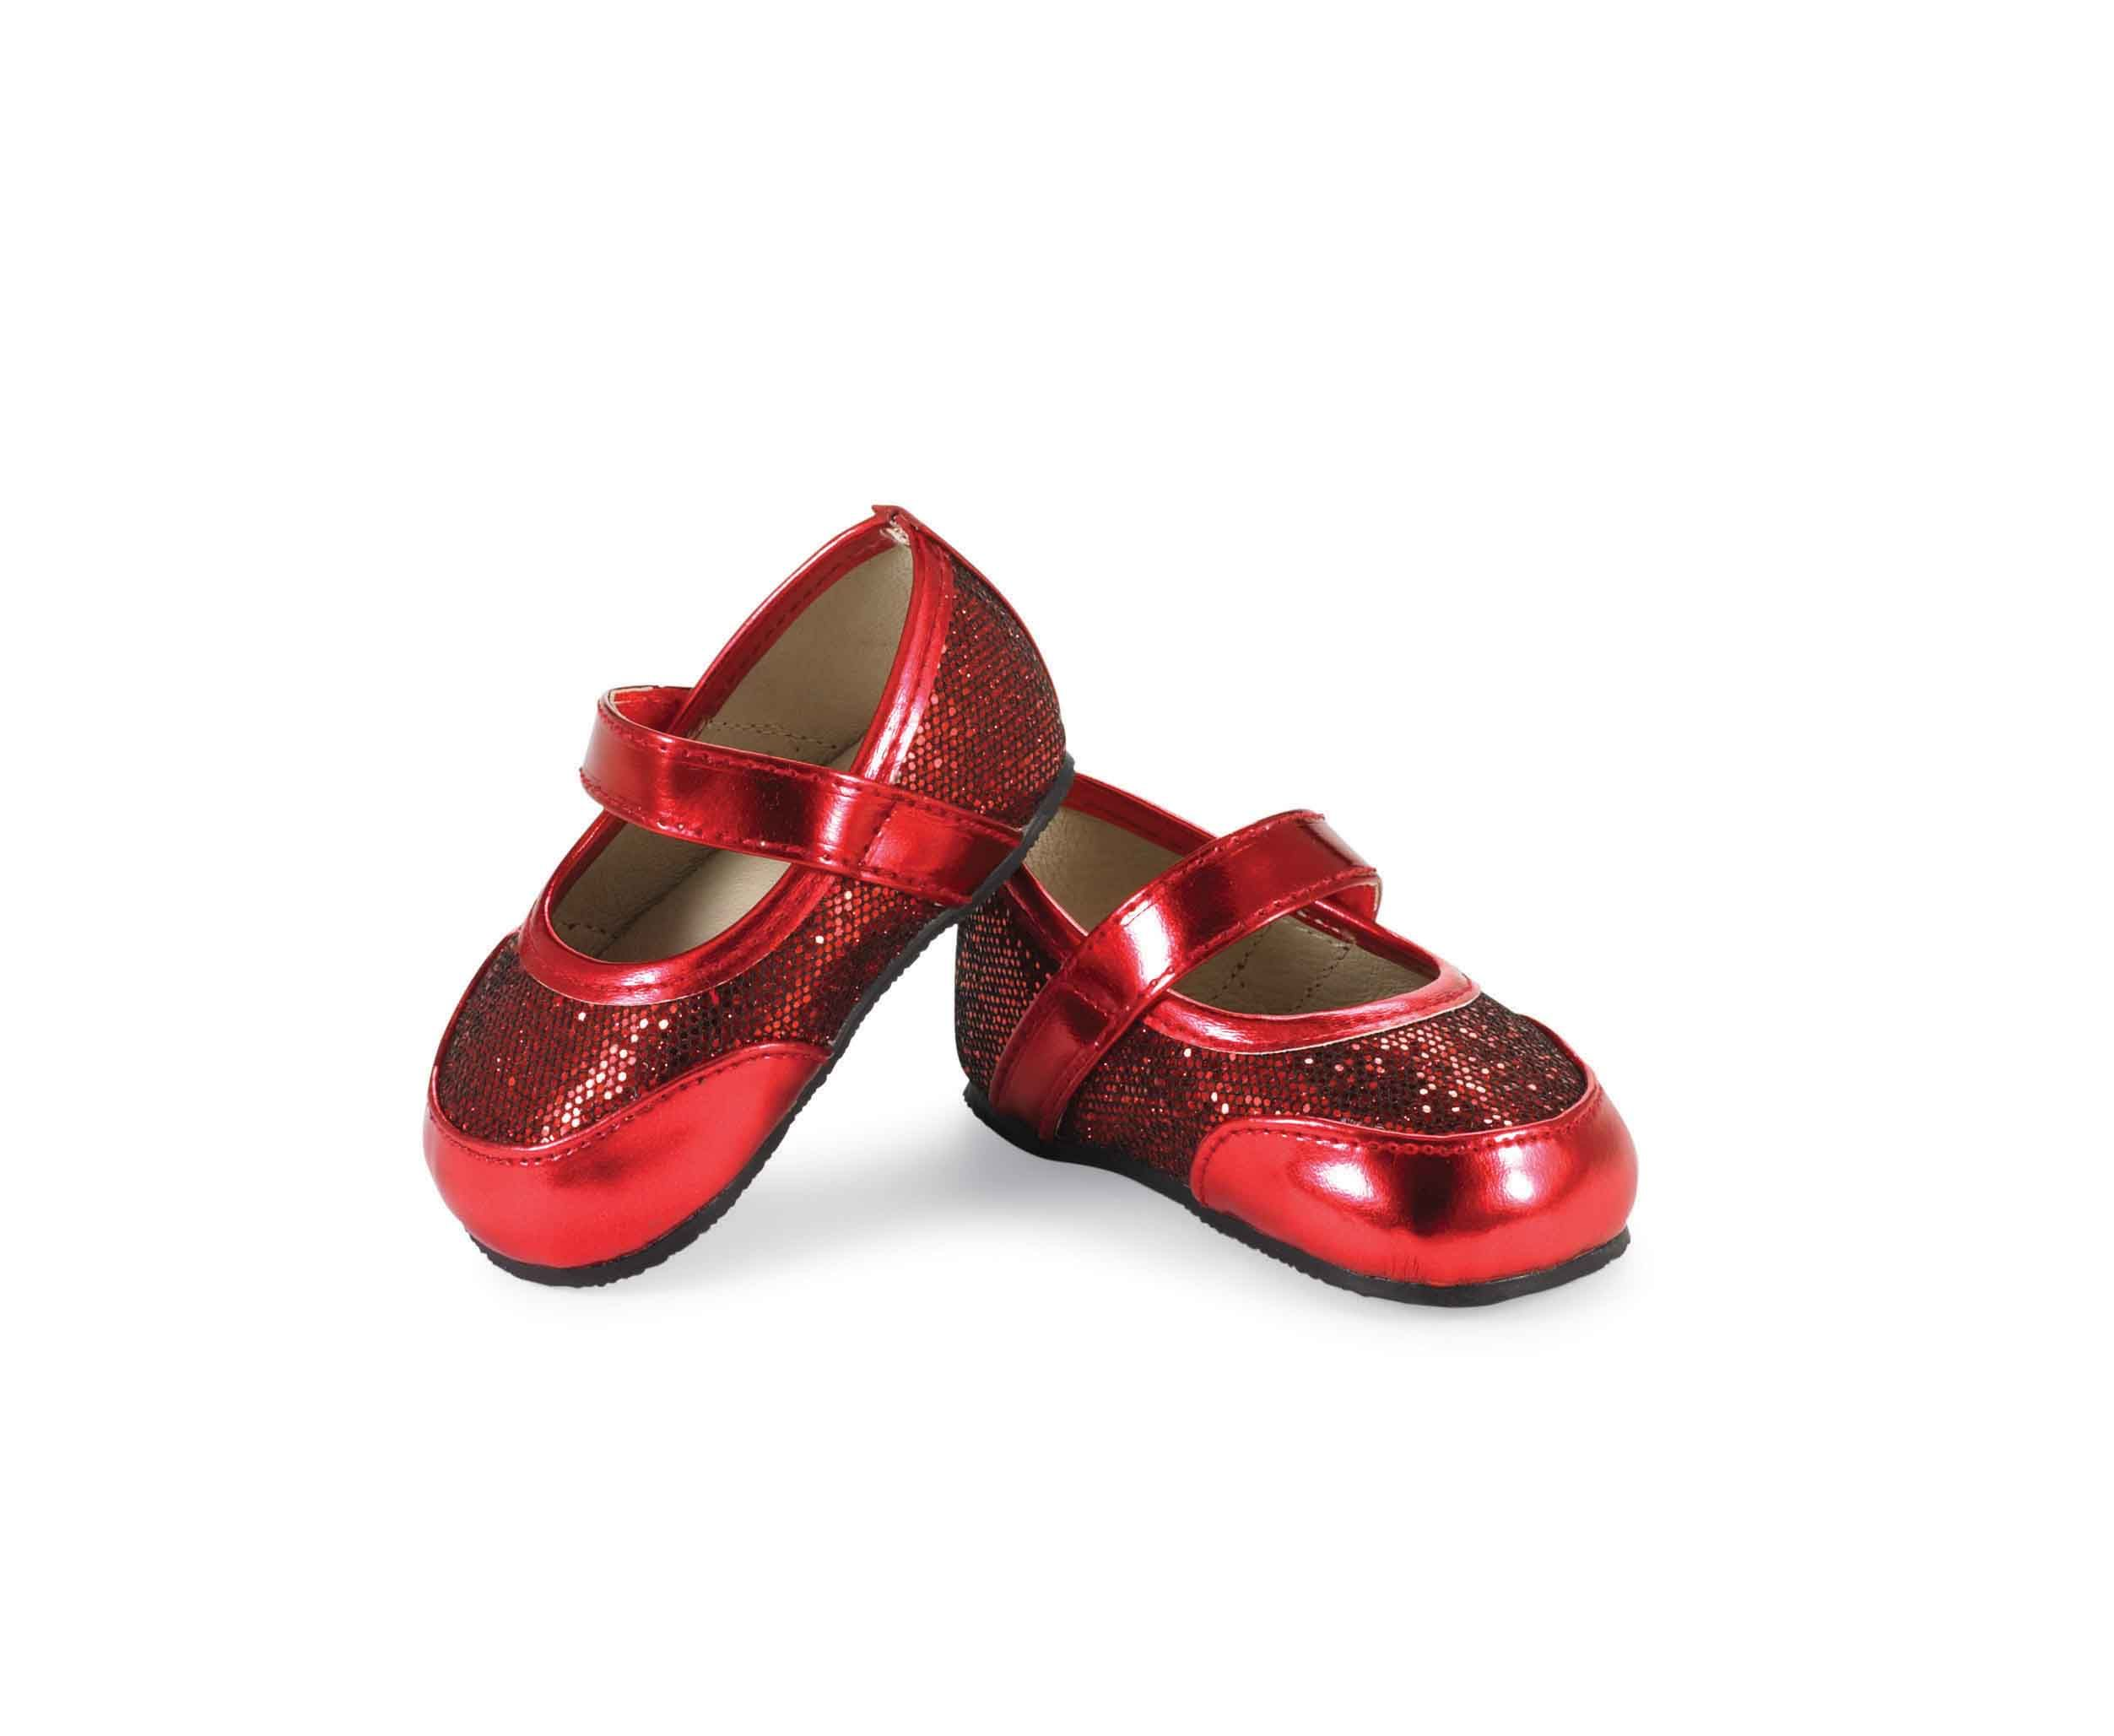 RED MARY JANES $29.00